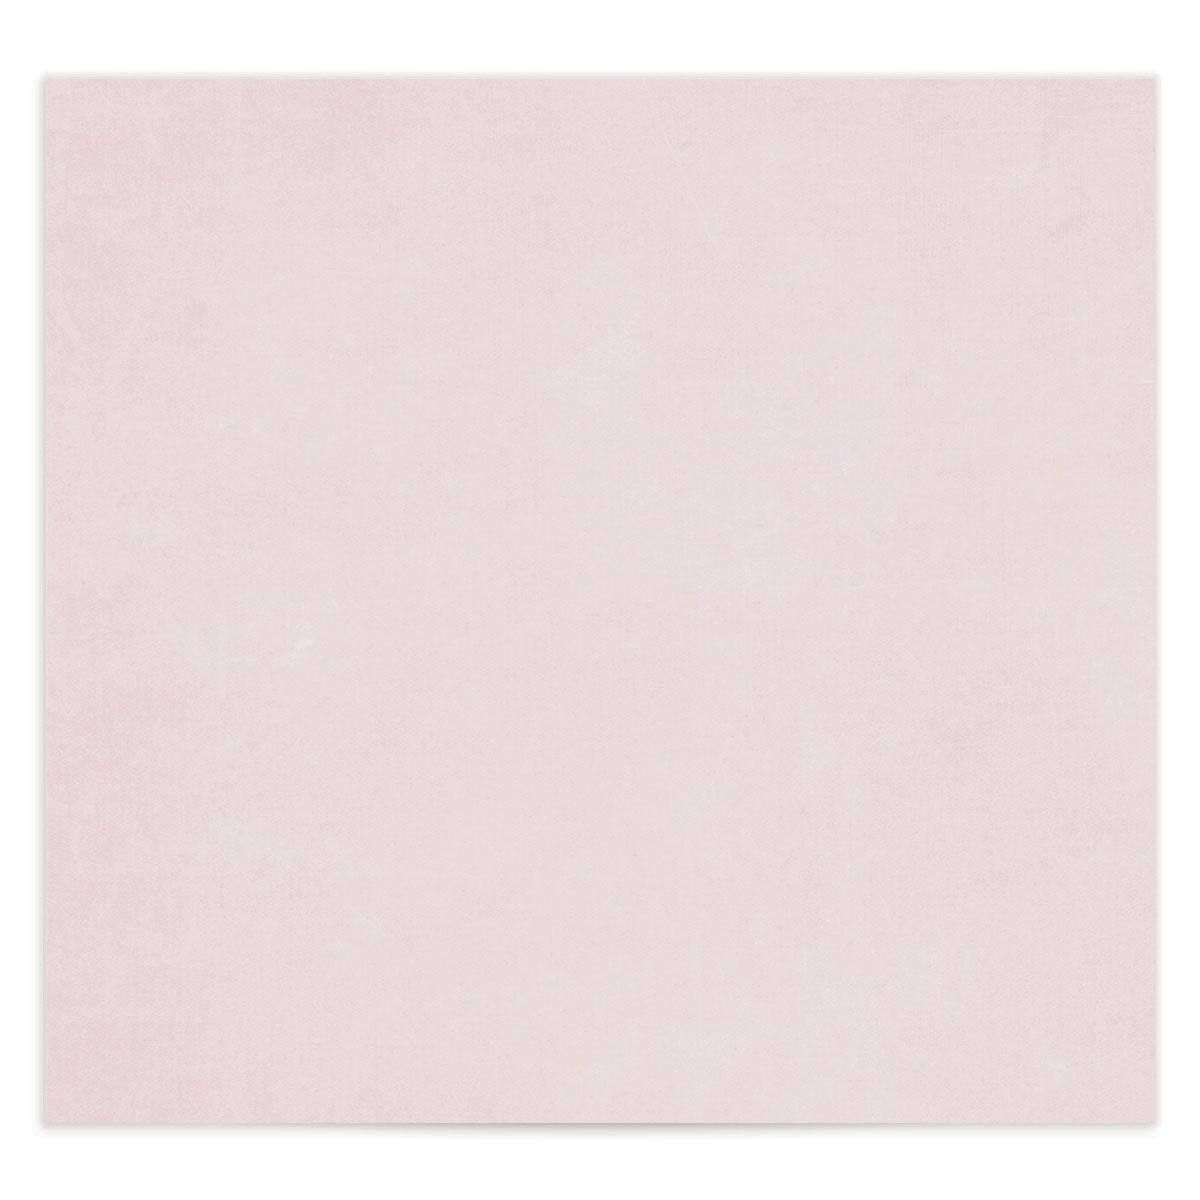 Watercolor Crest envelope liner pink